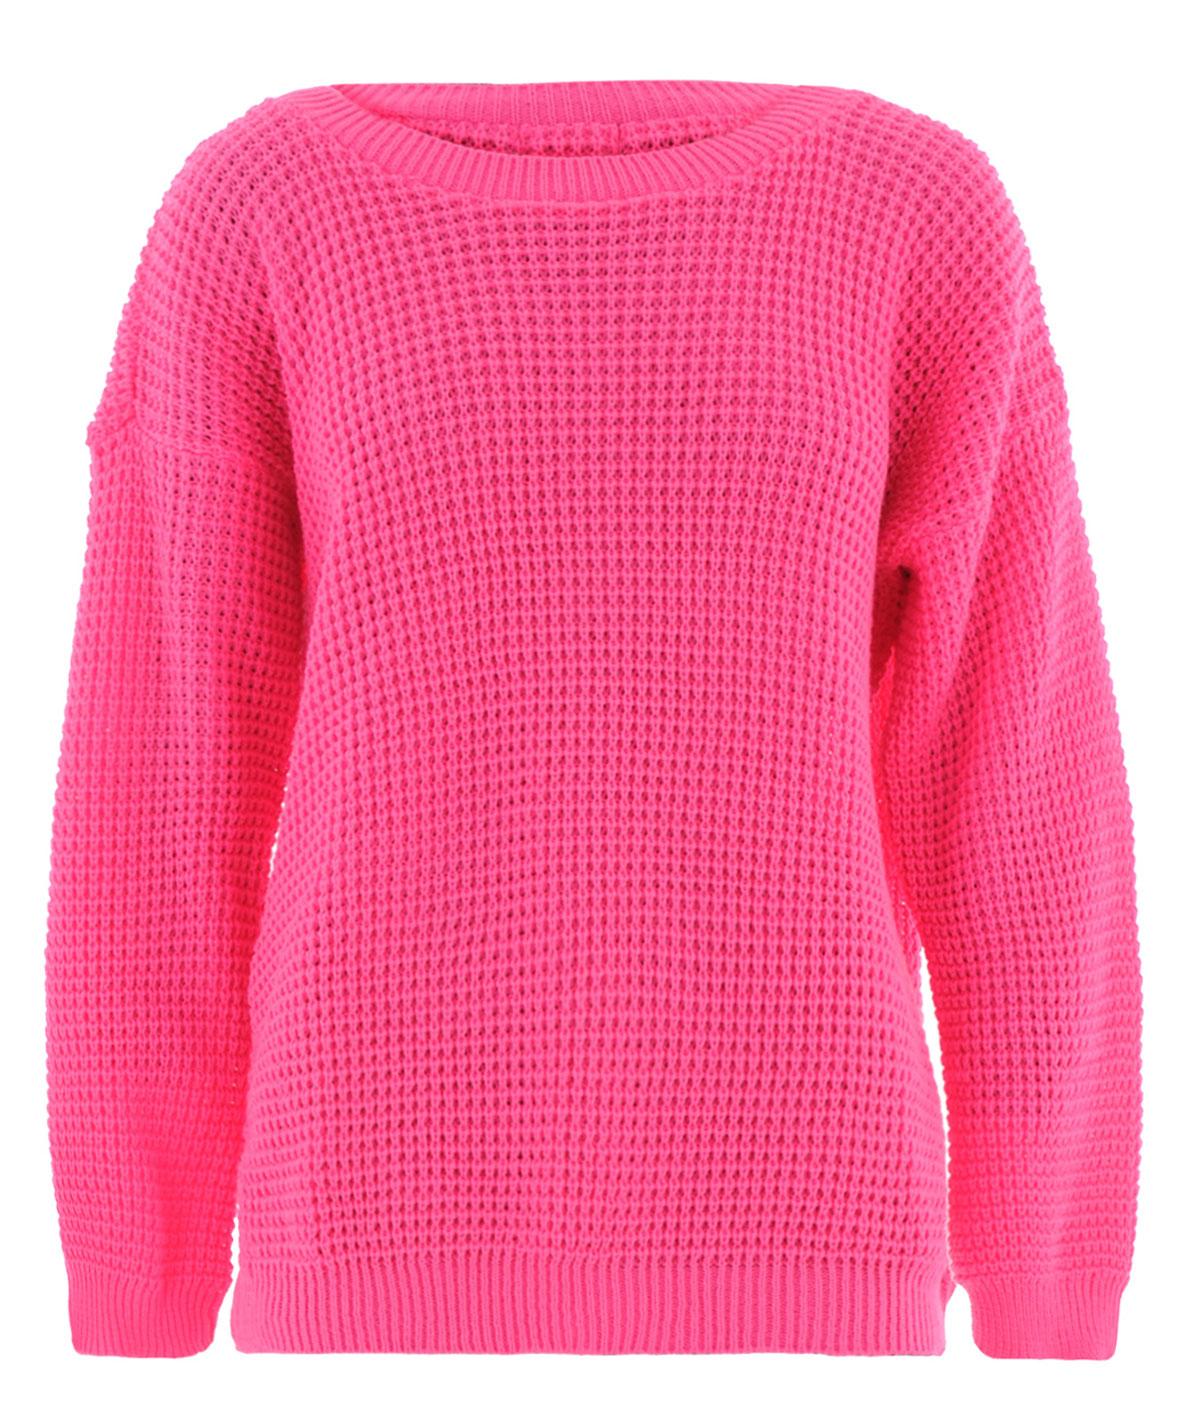 Ladies-Bright-Neon-Oversized-Waffle-Knit-Wide-Scoop-Neck-Sweater-Jumper-UK-8-14